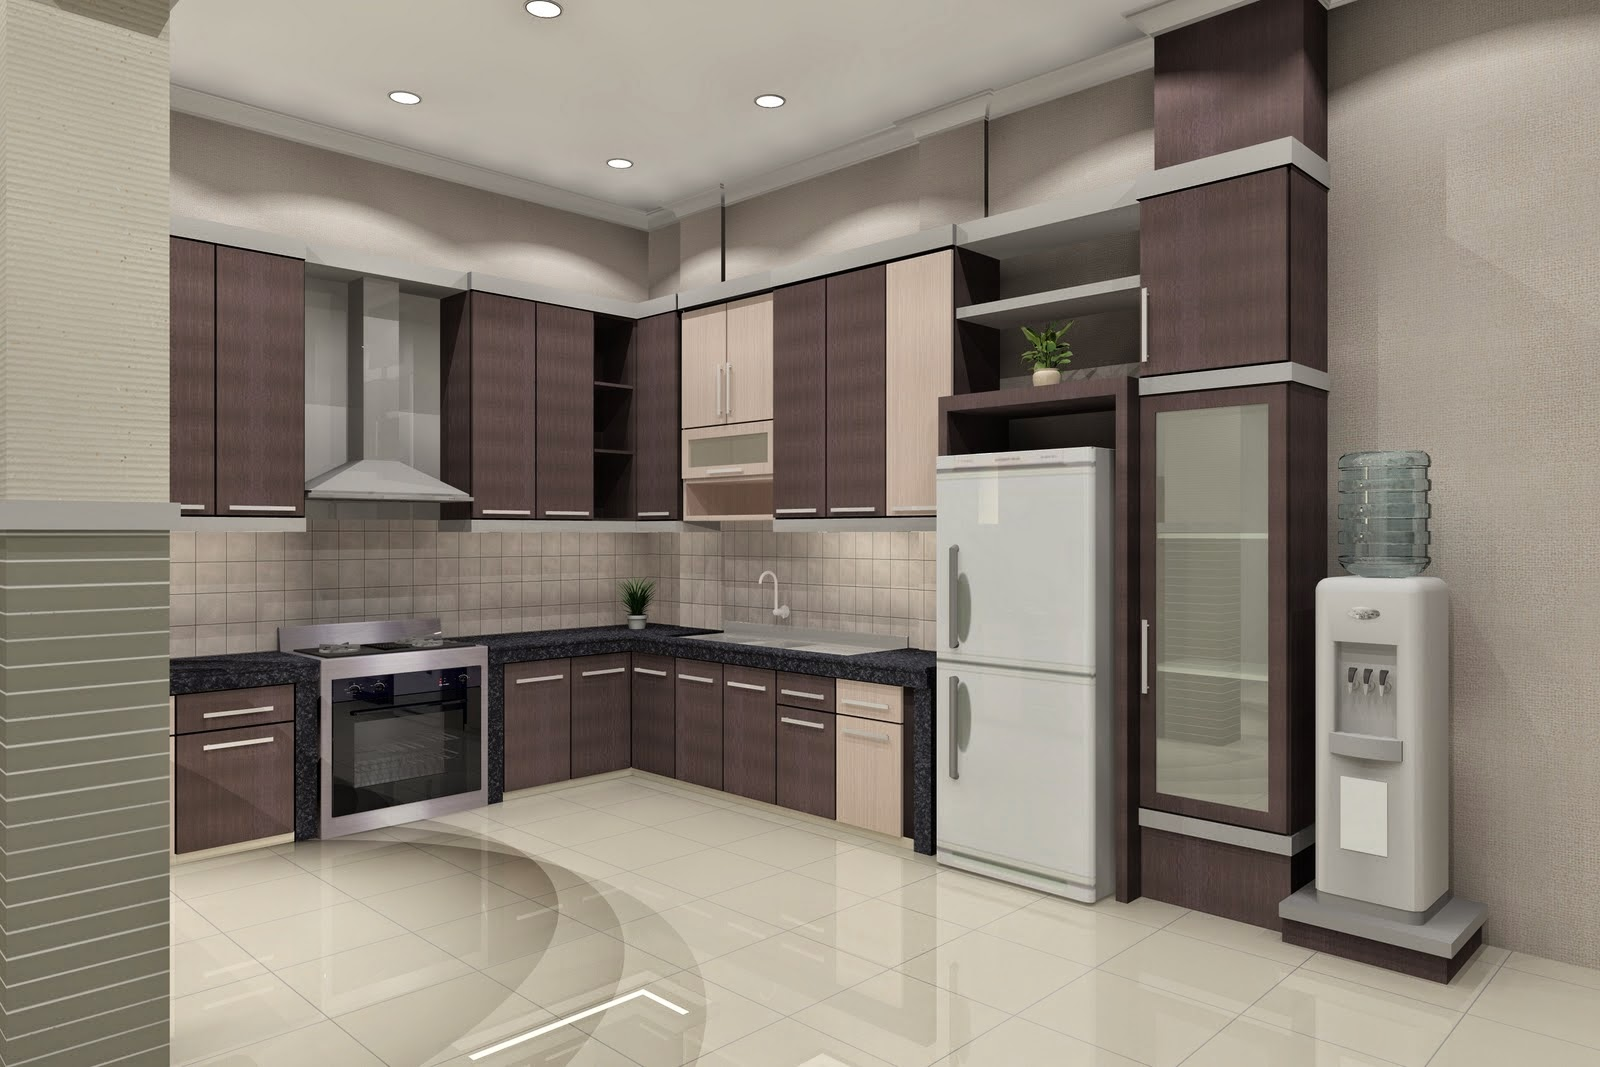 Simple minimalist kitchen design 2015 home design ideas 2015 for Dapur kitchen set